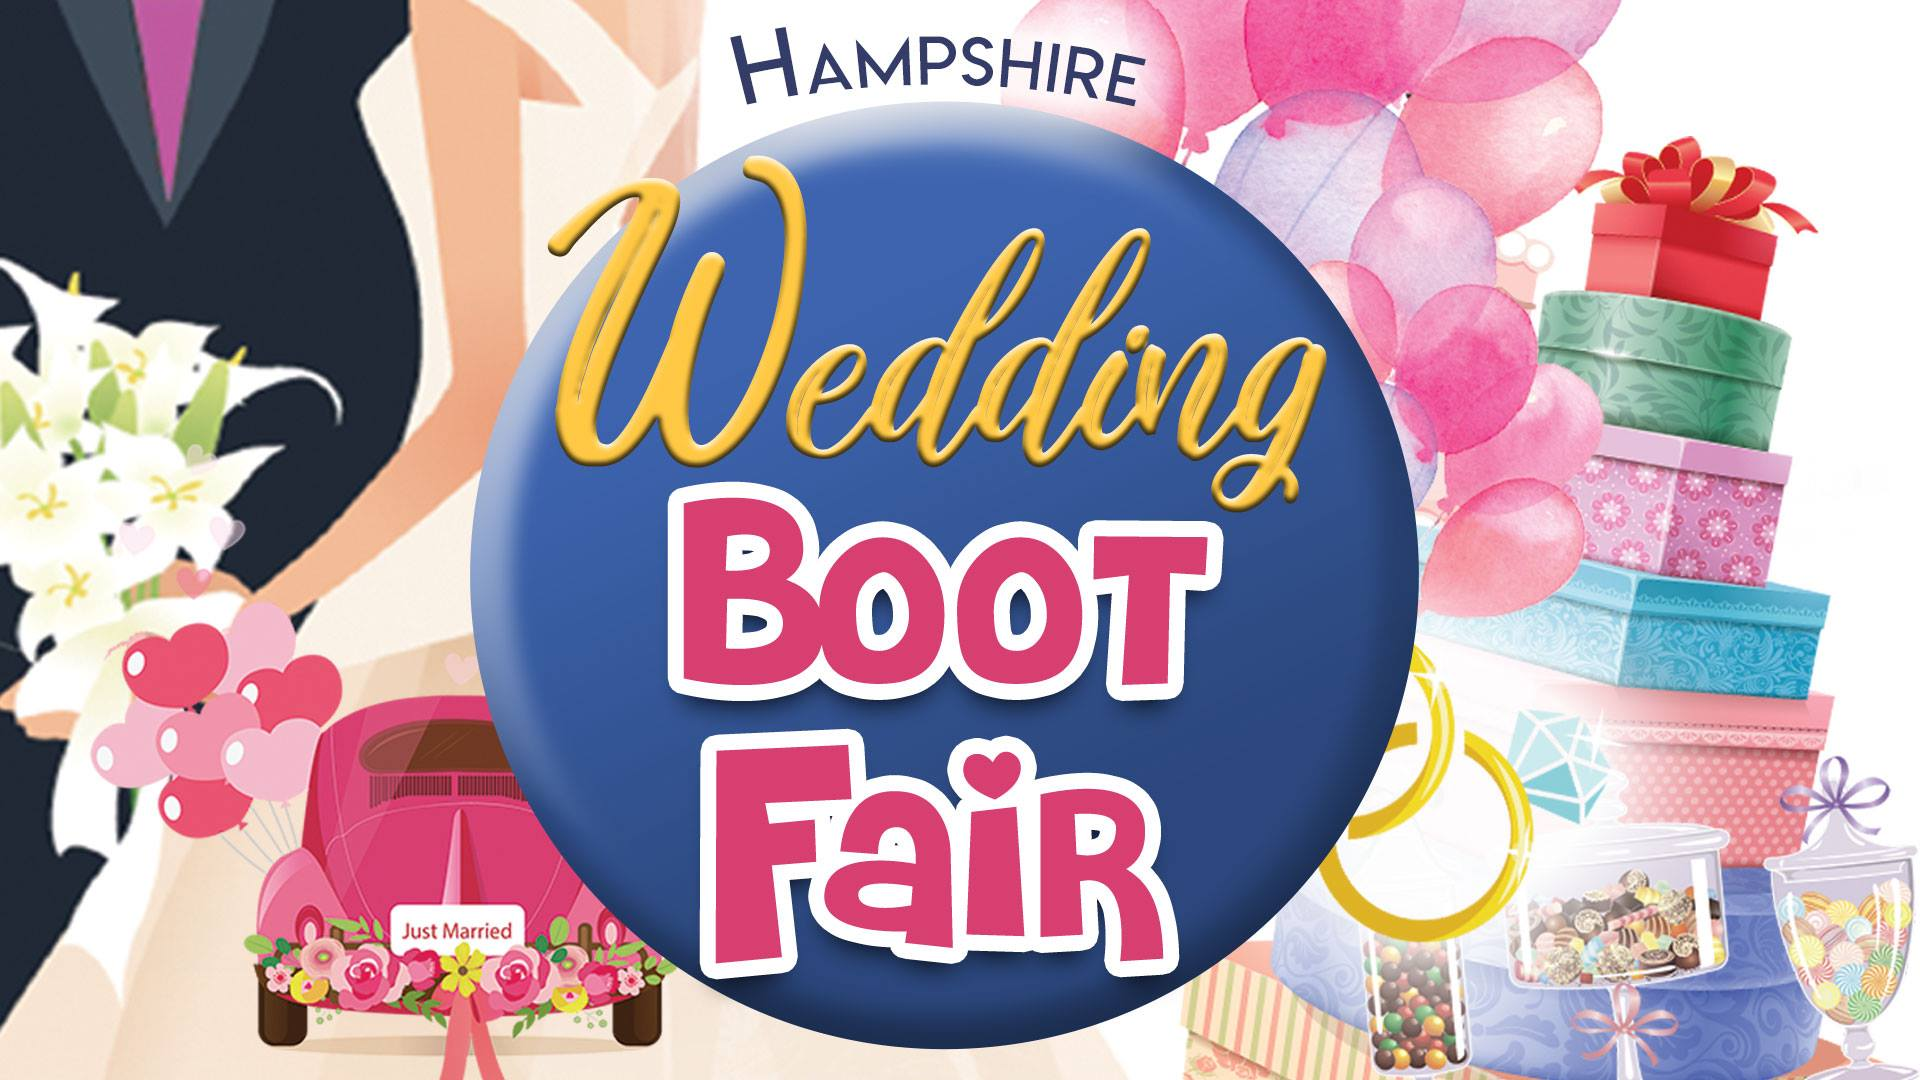 Hants Events Wedding Boot Fair